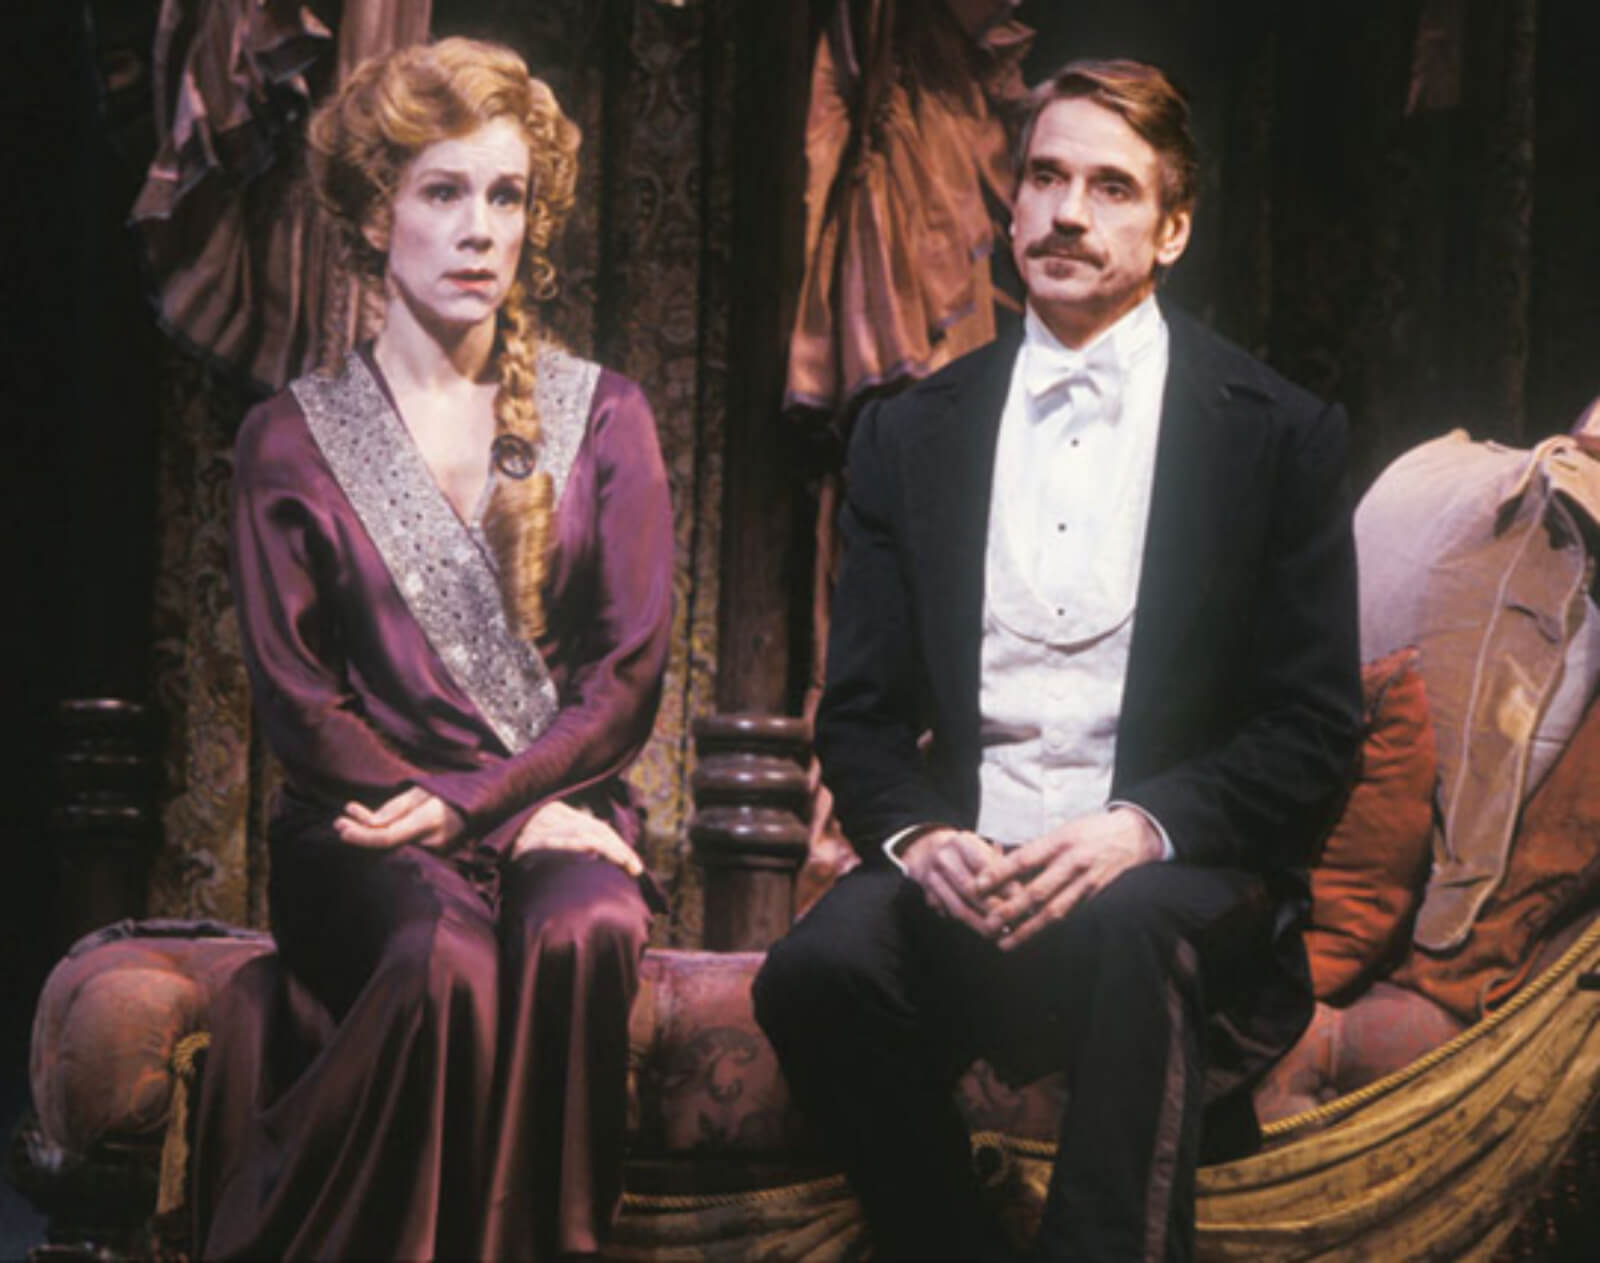 """Juliet Stevenson as Desiree Armfeldt and Jeremy Irons as Fredrik Egerman sing """"You Must Meet My Wife"""". She is dressed in her purple dressing gown and he is in a white tie and tails. They sit on a divan in A Little Night Music."""